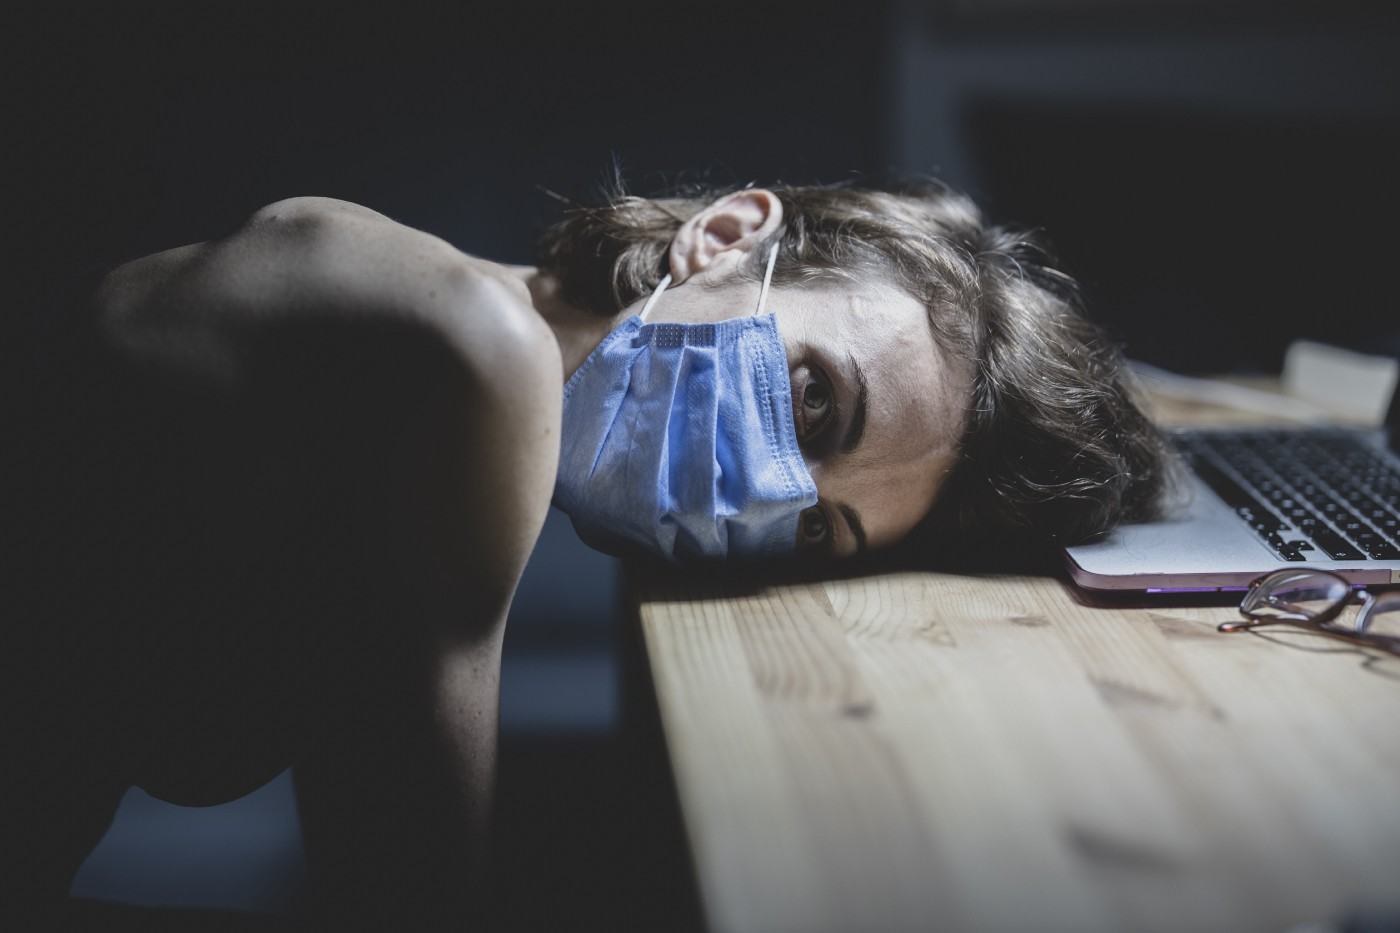 A girl wearing a mask is keeping her head on a desk near her laptop, looking worried.